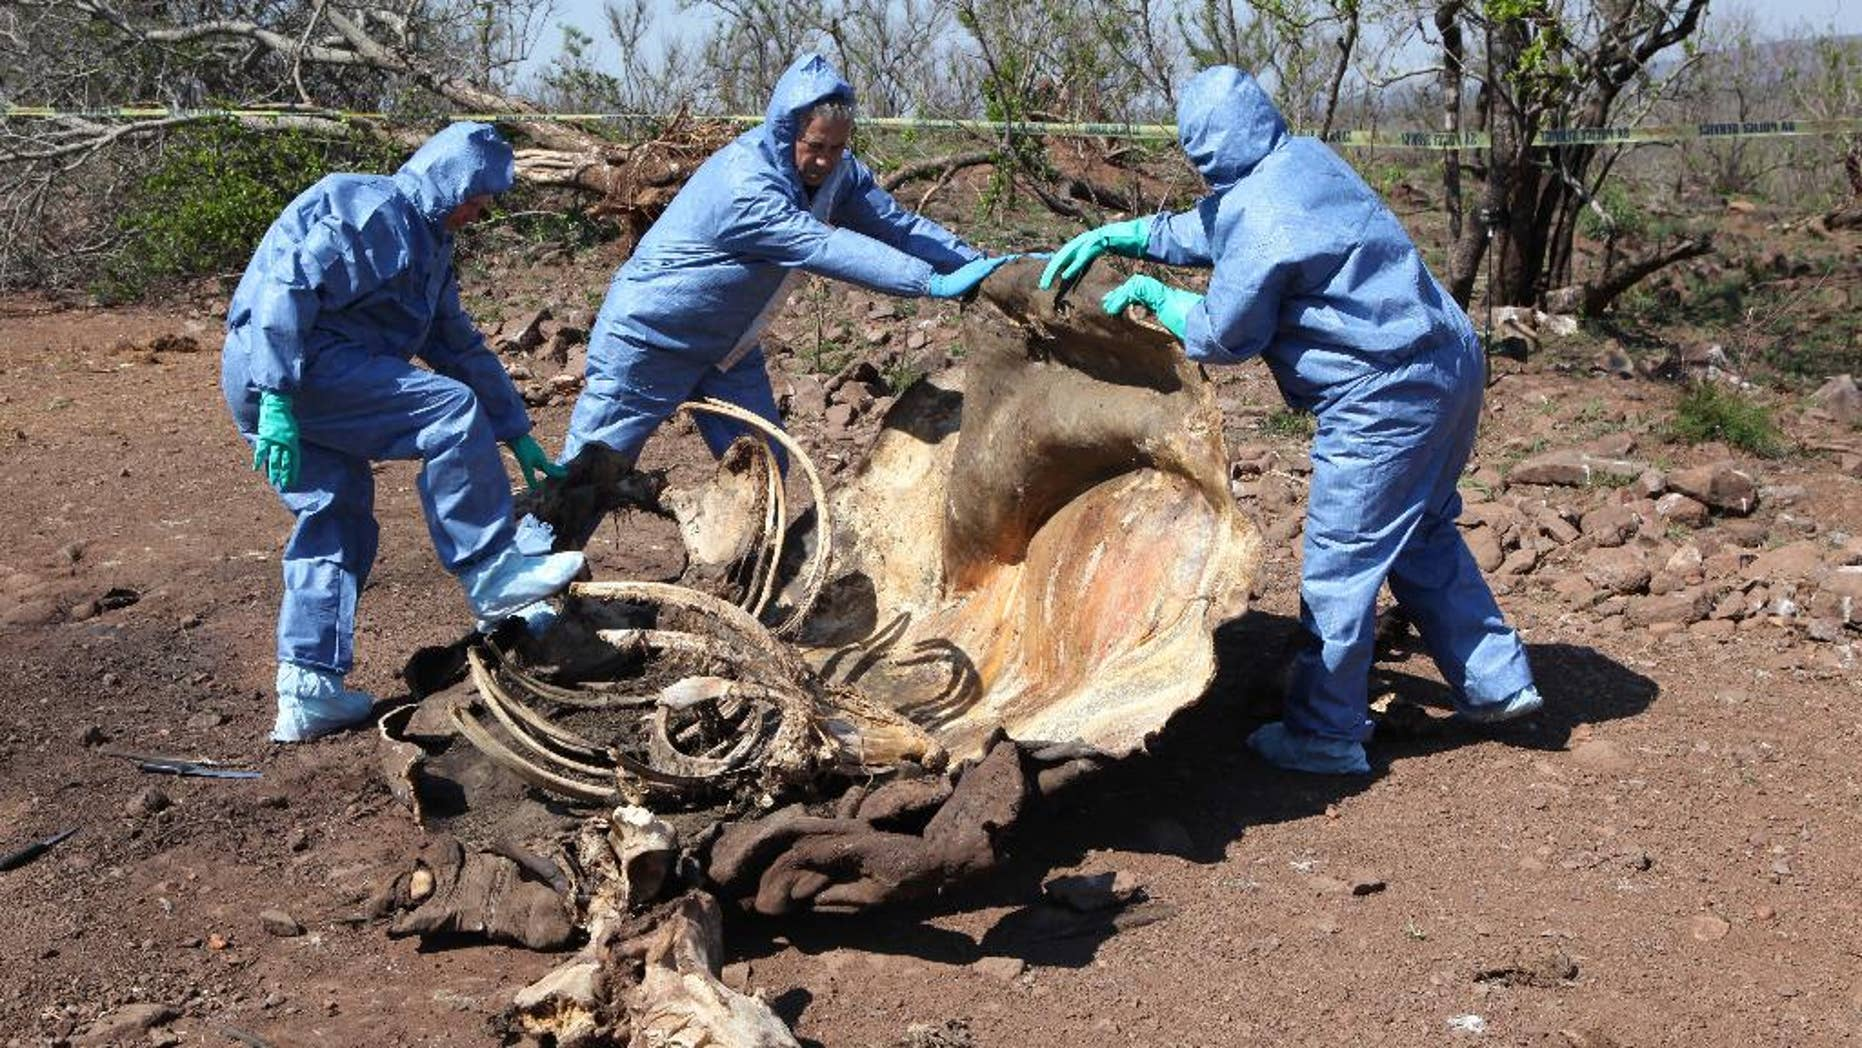 Nov. 20, 2014: In this file photo, investigators open the decomposed corpse of a poached rhino in search of forensic evidence, on the border with neighboring Mozambique near Skukuza, South Africa. (AP)